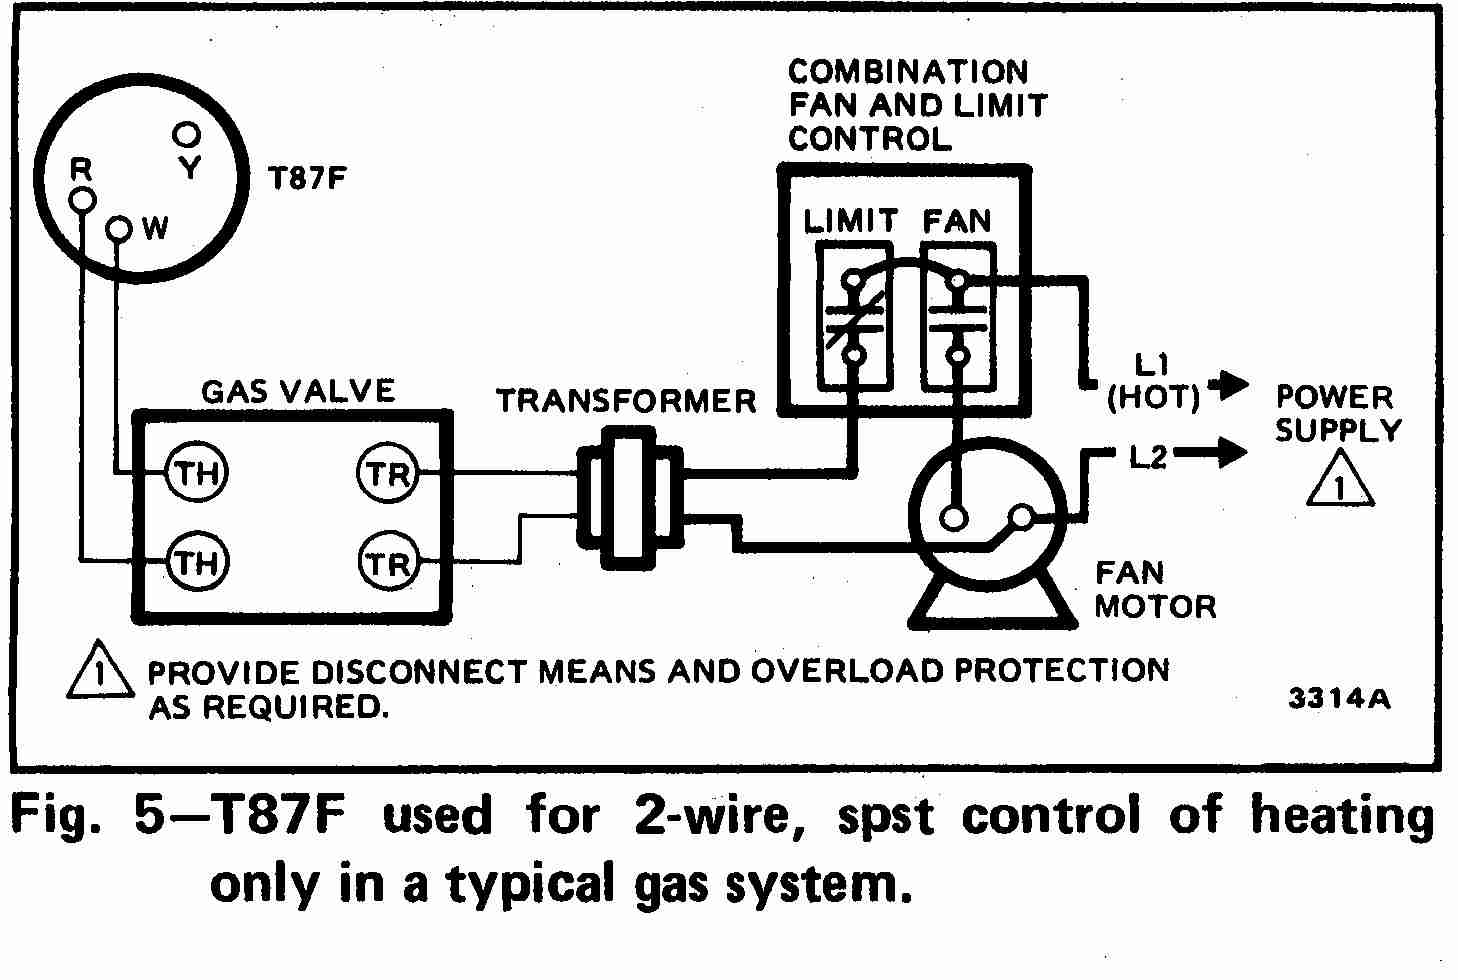 Room Thermostat Wiring Diagrams For Hvac Systems Different Ac Honeywell T87f Diagram 2 Wire Spst Control Of Heating Only In